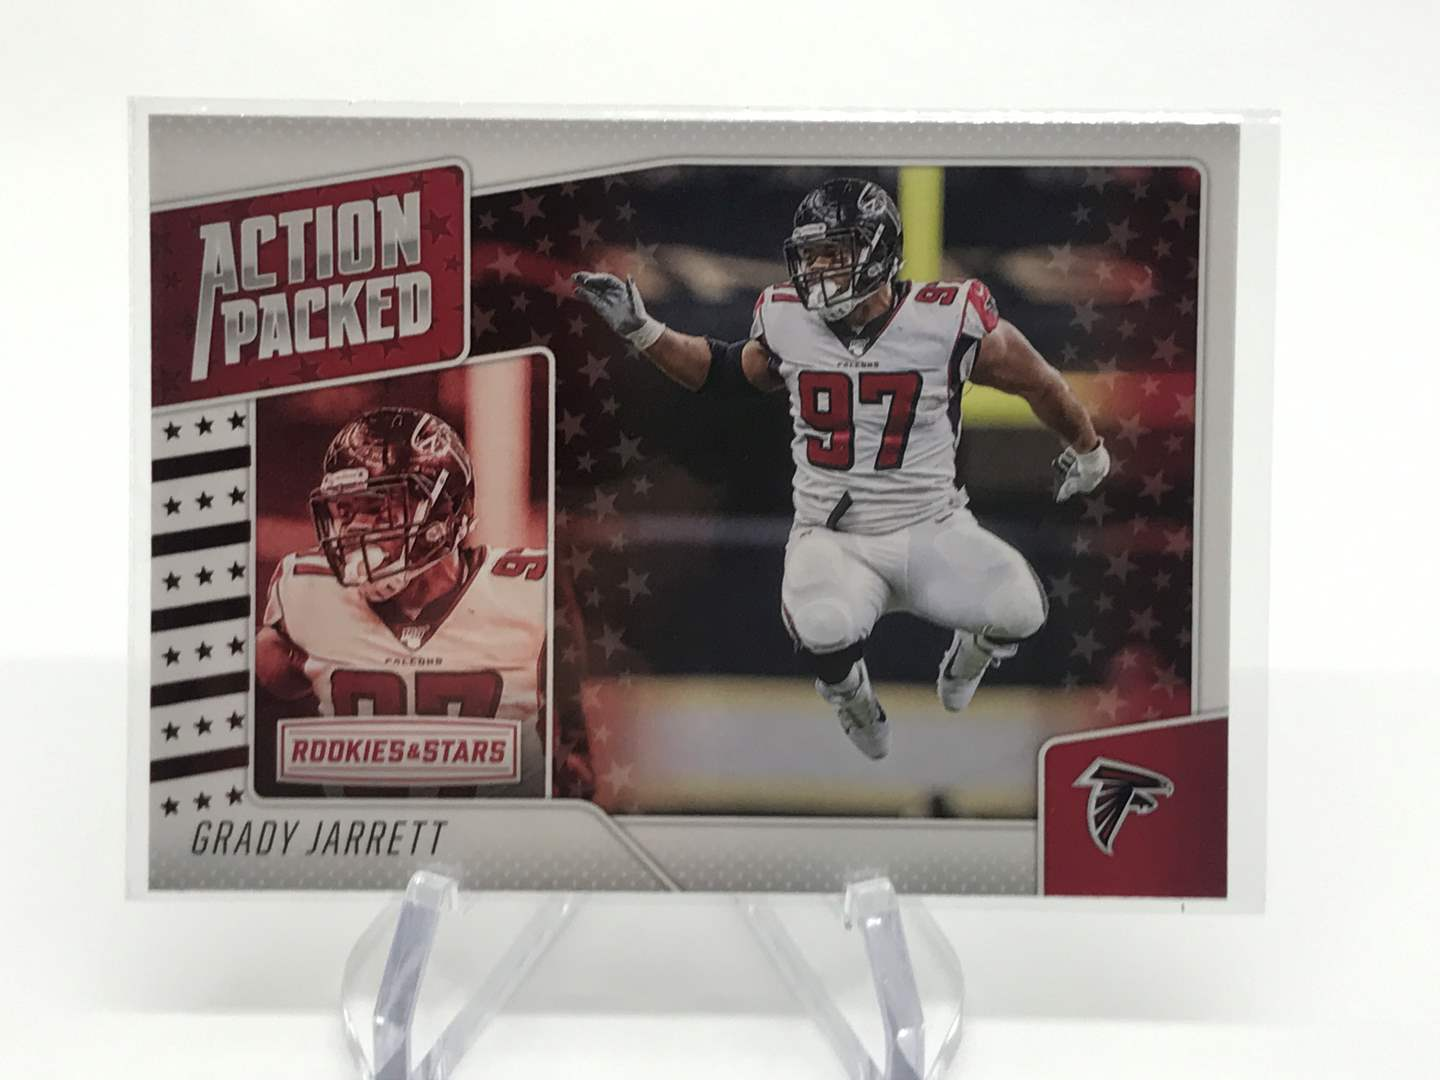 Lot # 267 2020 Rookies & Stars Action Packed GRADY JARETT (main image)